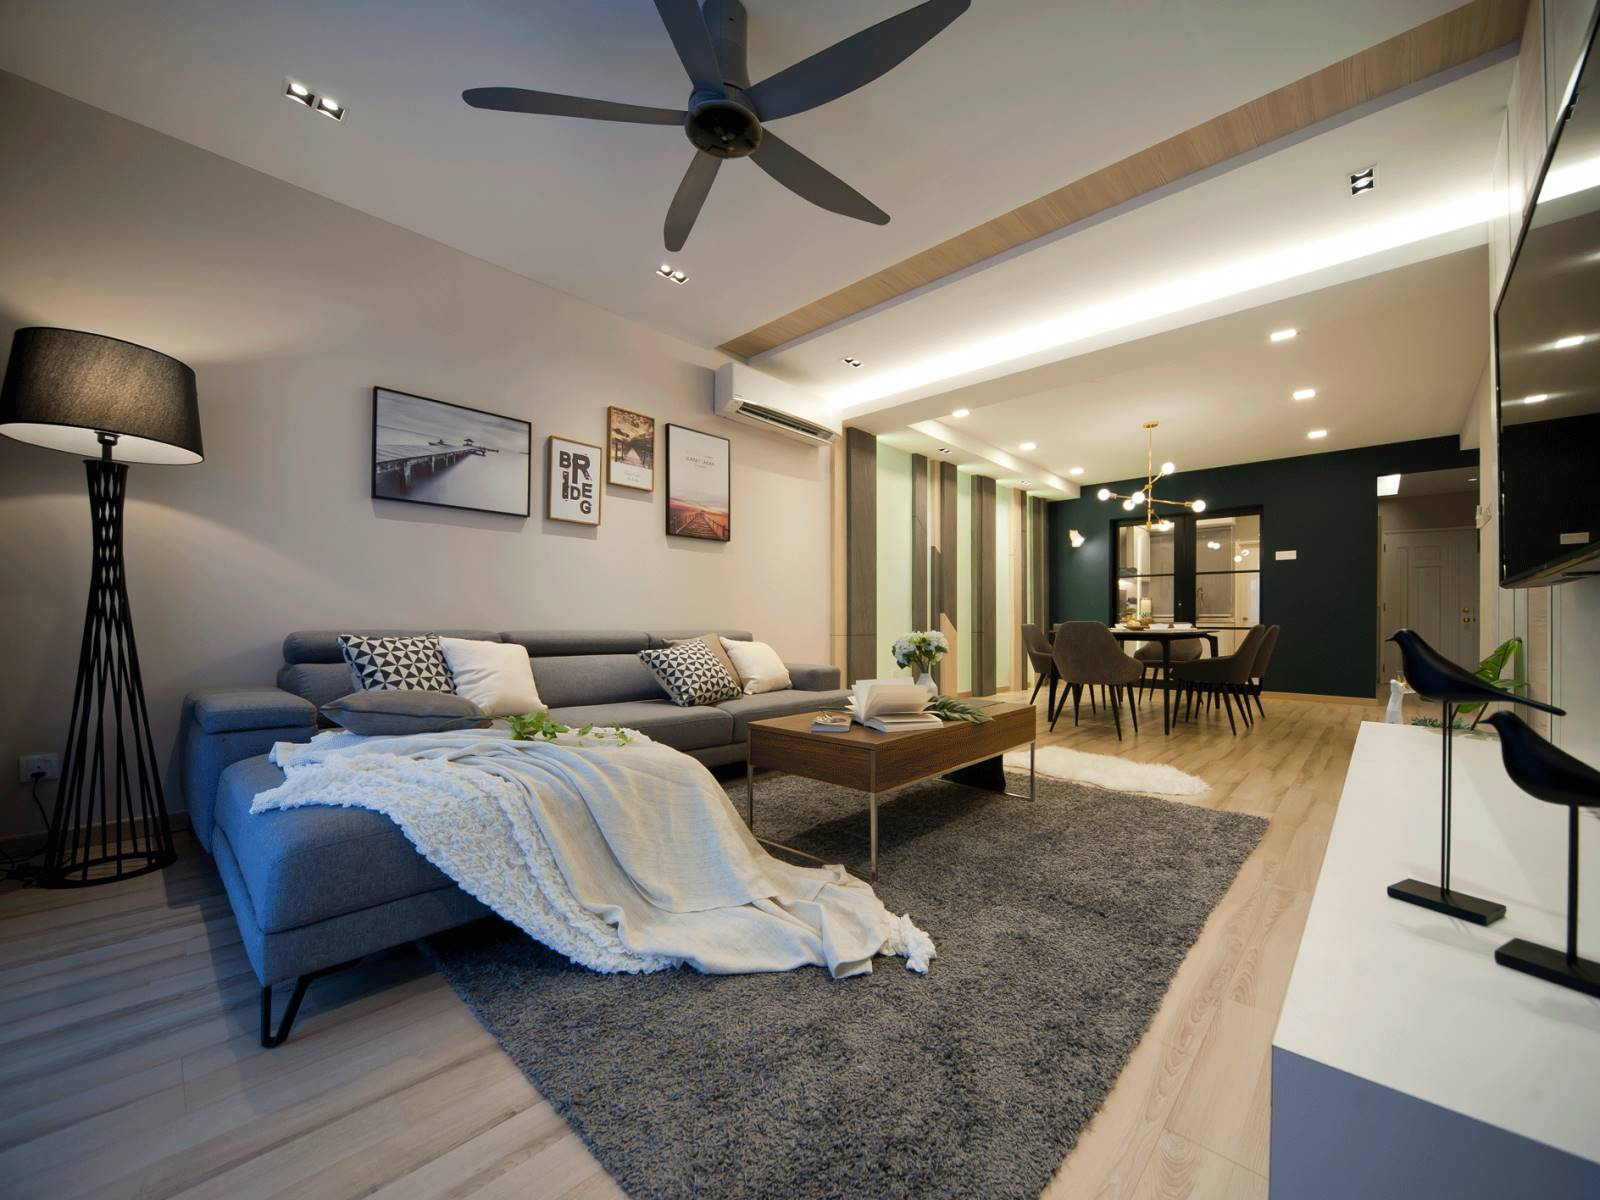 Fraser Towers - Gasing Height | Interior Design Malaysia